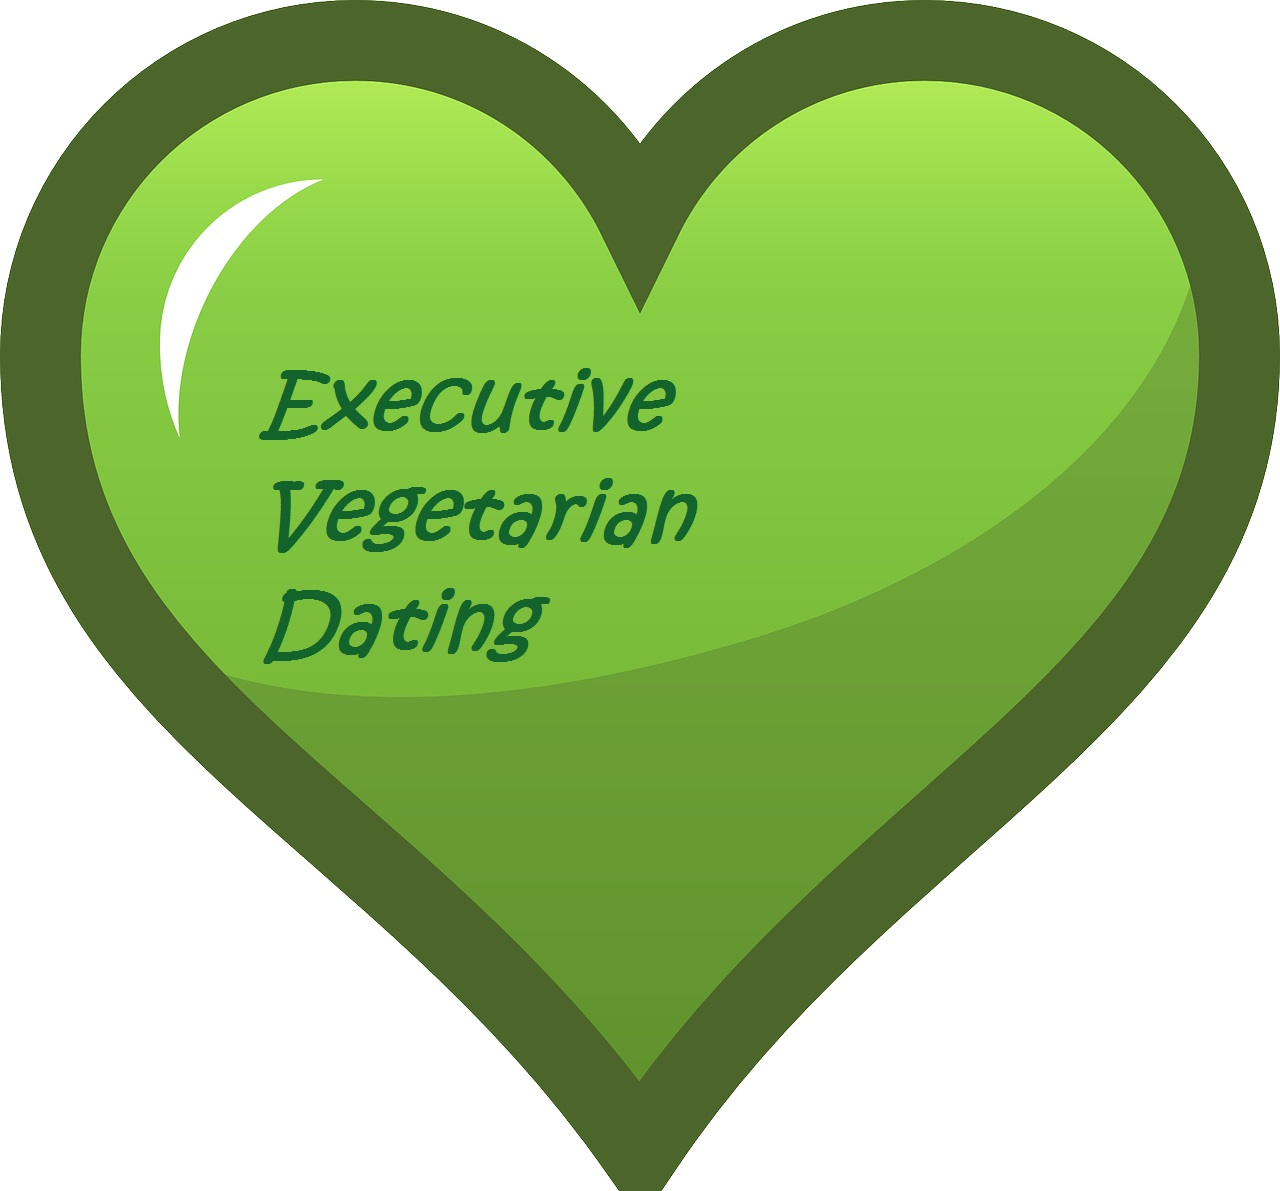 Vegetarian Dating Help!